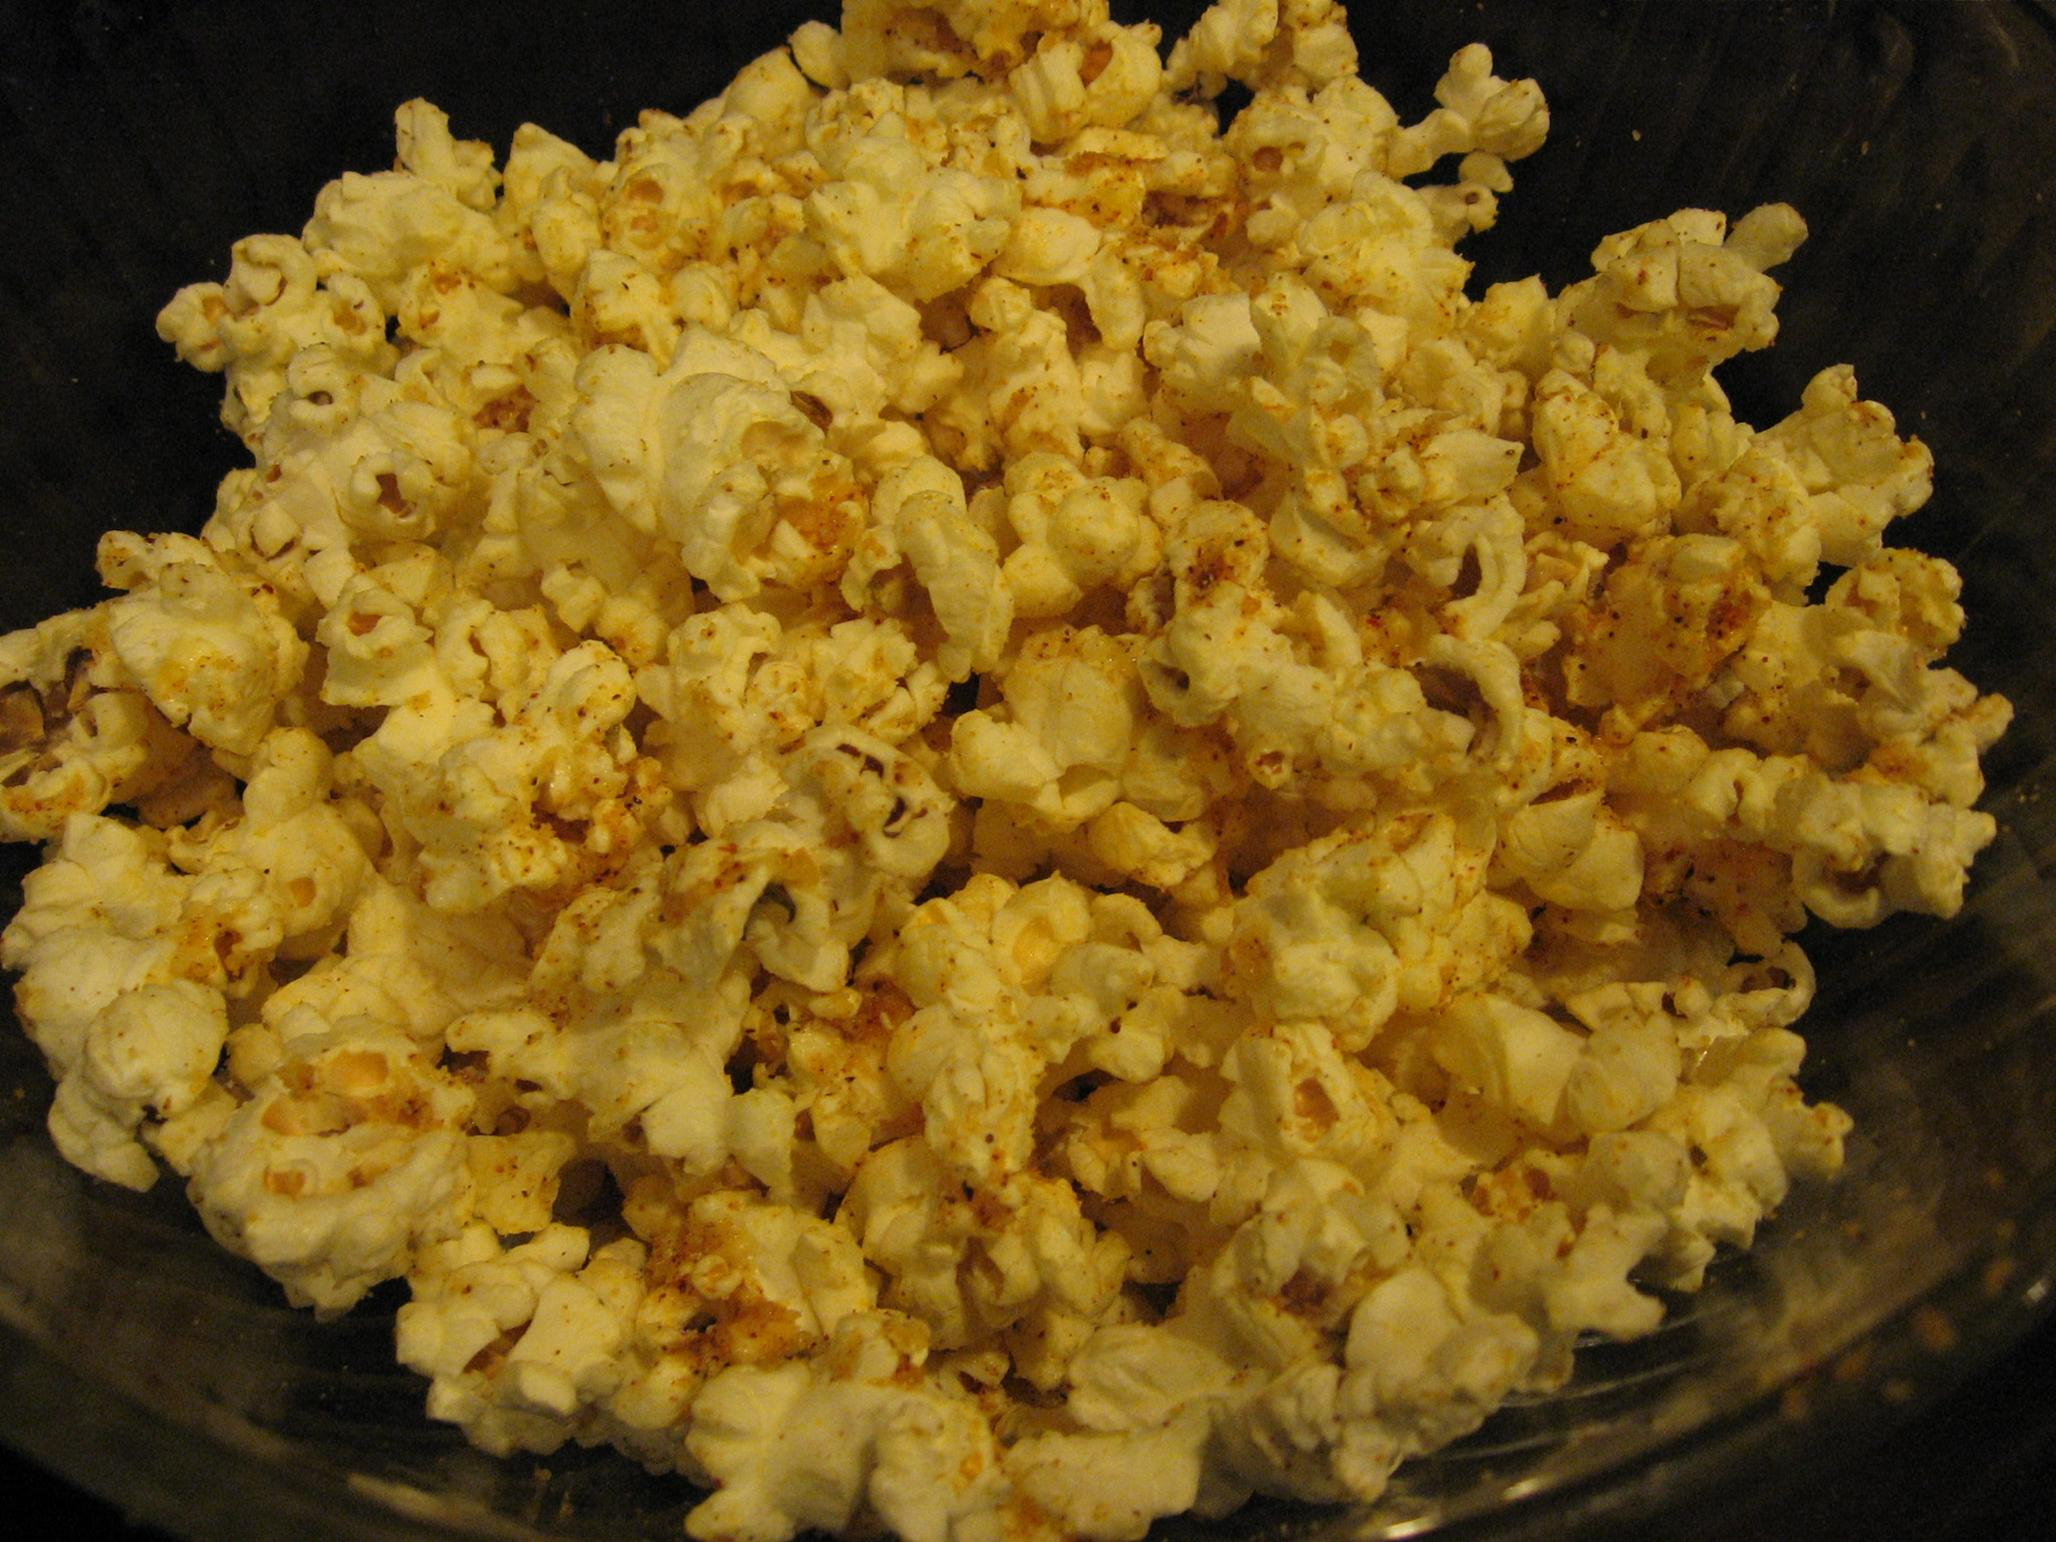 Popcorn: A Healthy and Affordable Snack